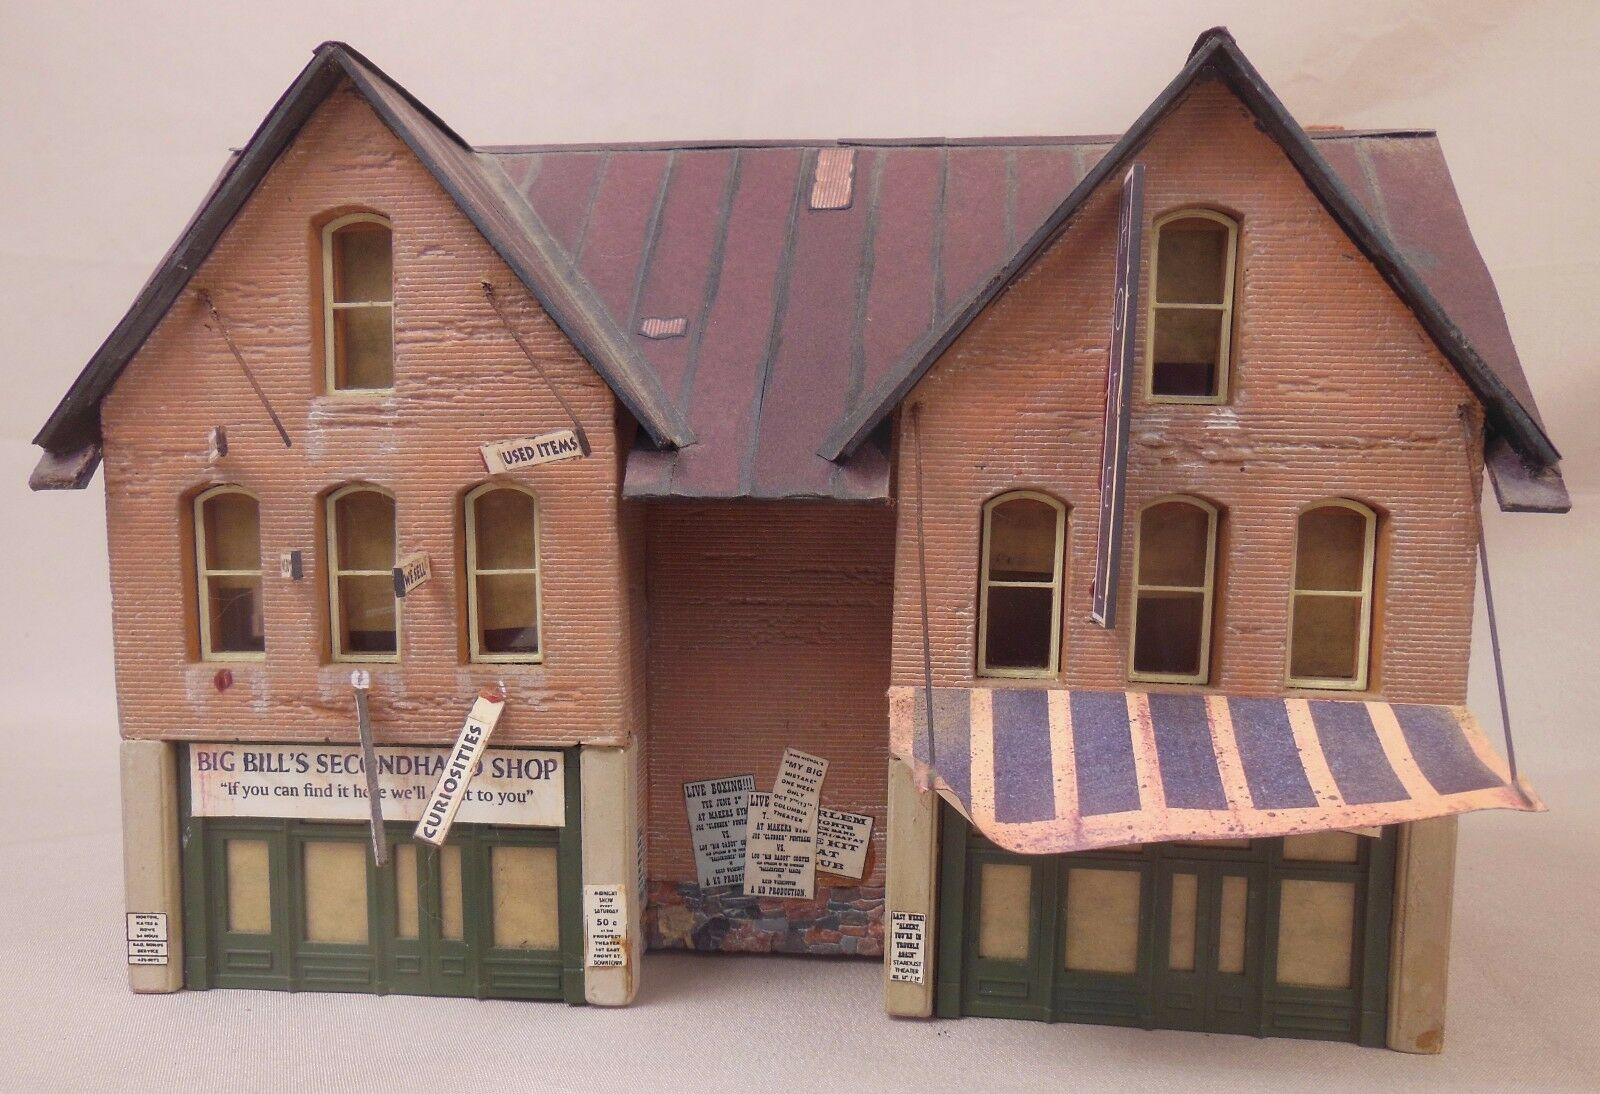 HO SCALE DOWNTOWN DECO ADDAMS ST PART 4 CRAFTSMAN BUILT LAYOUT STRUCTURE  426